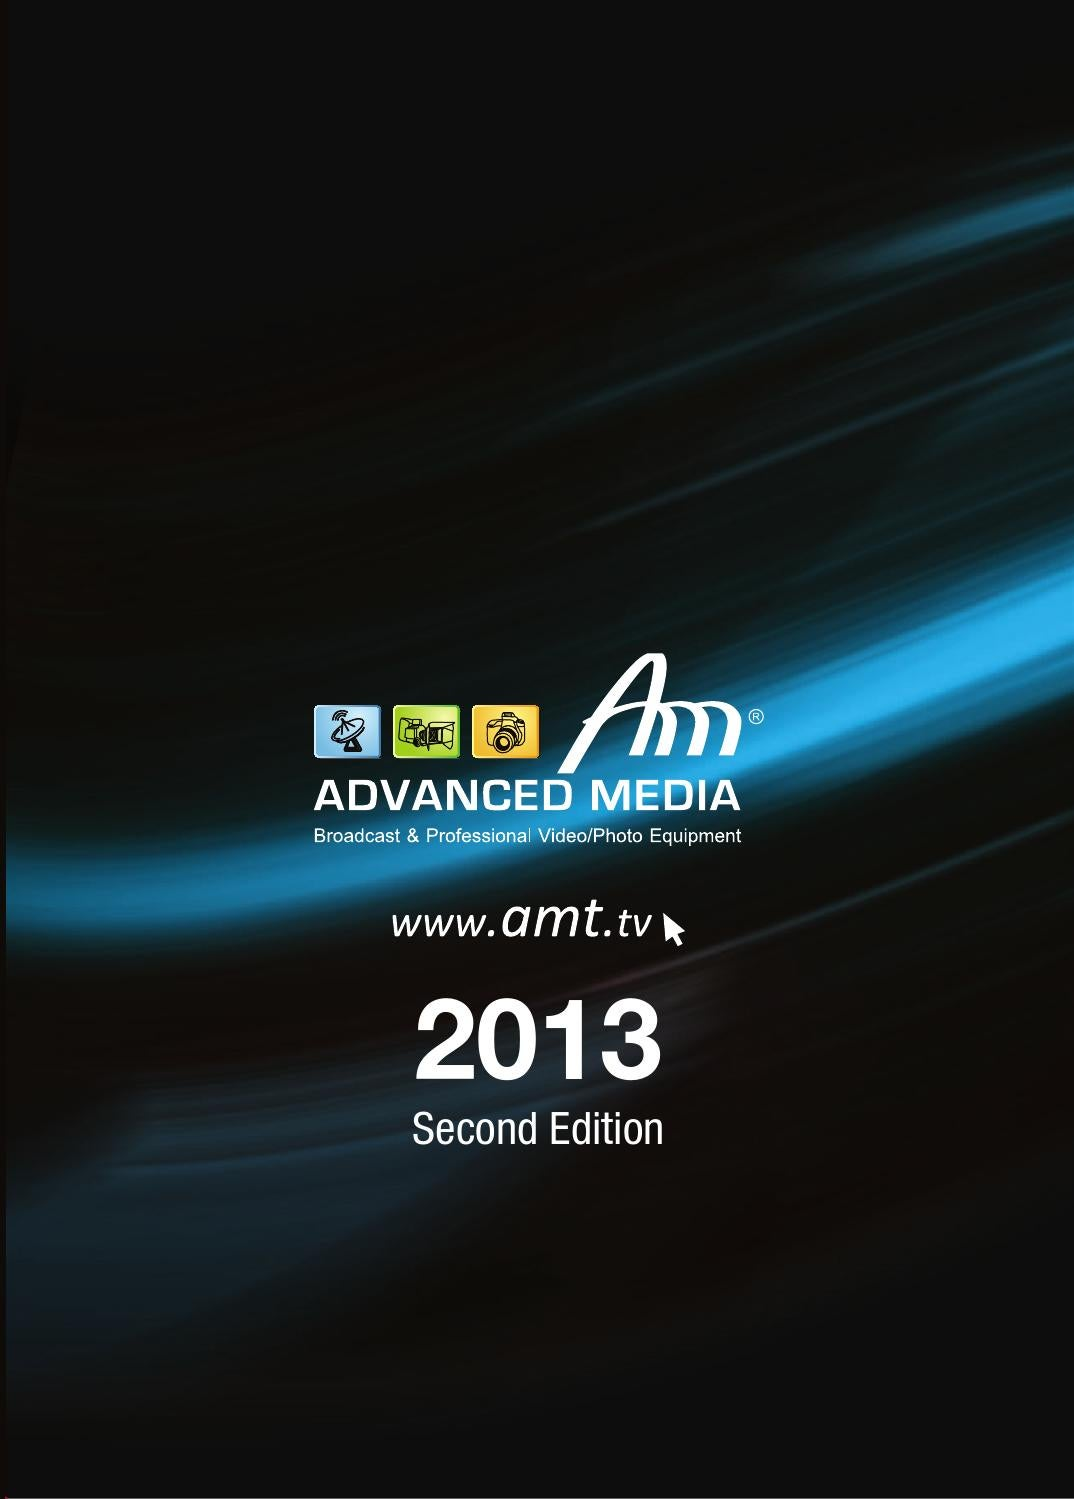 Advanced Media Product Guide 2013 Second Edition By Efek Gitar Amt R1 Trading Issuu